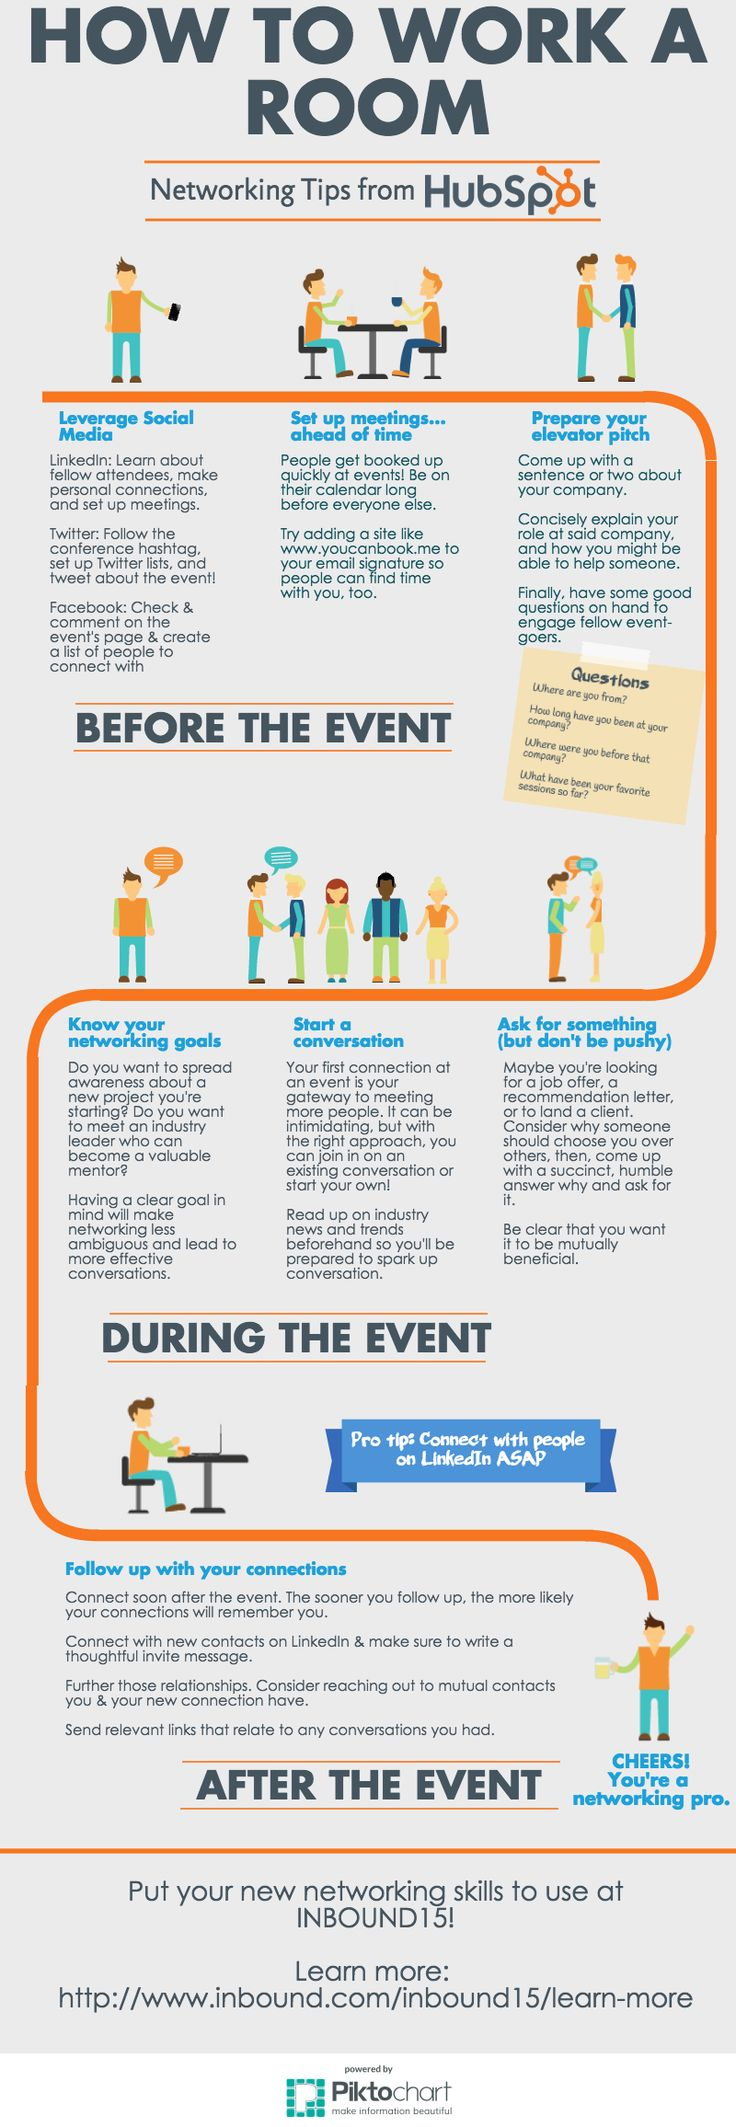 How To Work a Room at your next networking event - helpful for the introverts amongst us!